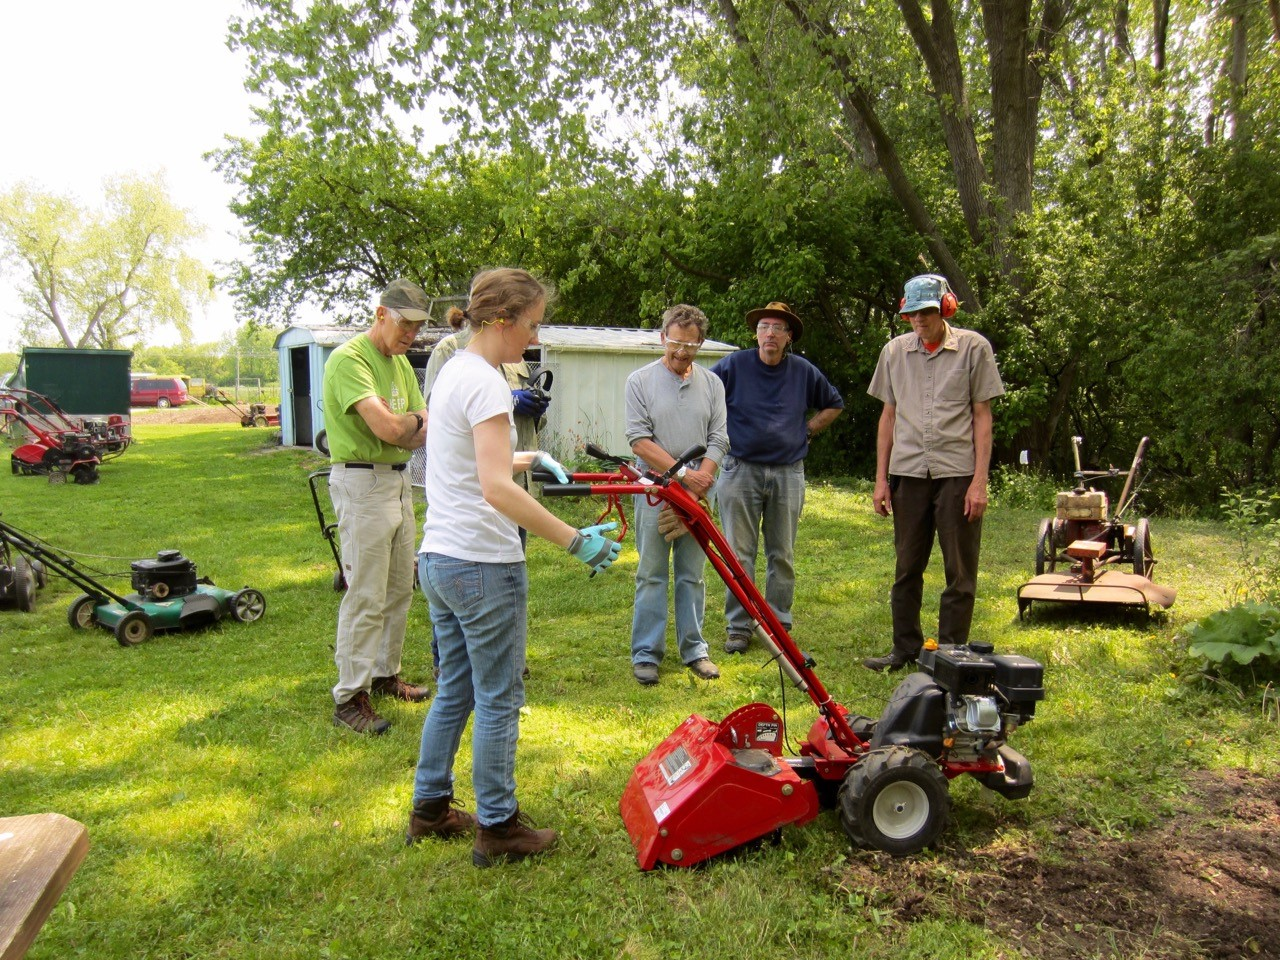 The Fermilab Garden Club members are be trained in the proper use of the rototillers and mowers. The gardens are coming back to life, with blossoms on the strawberries and the first planting of Swiss chard and lettuce. Photo: Georgia Schwender, OC